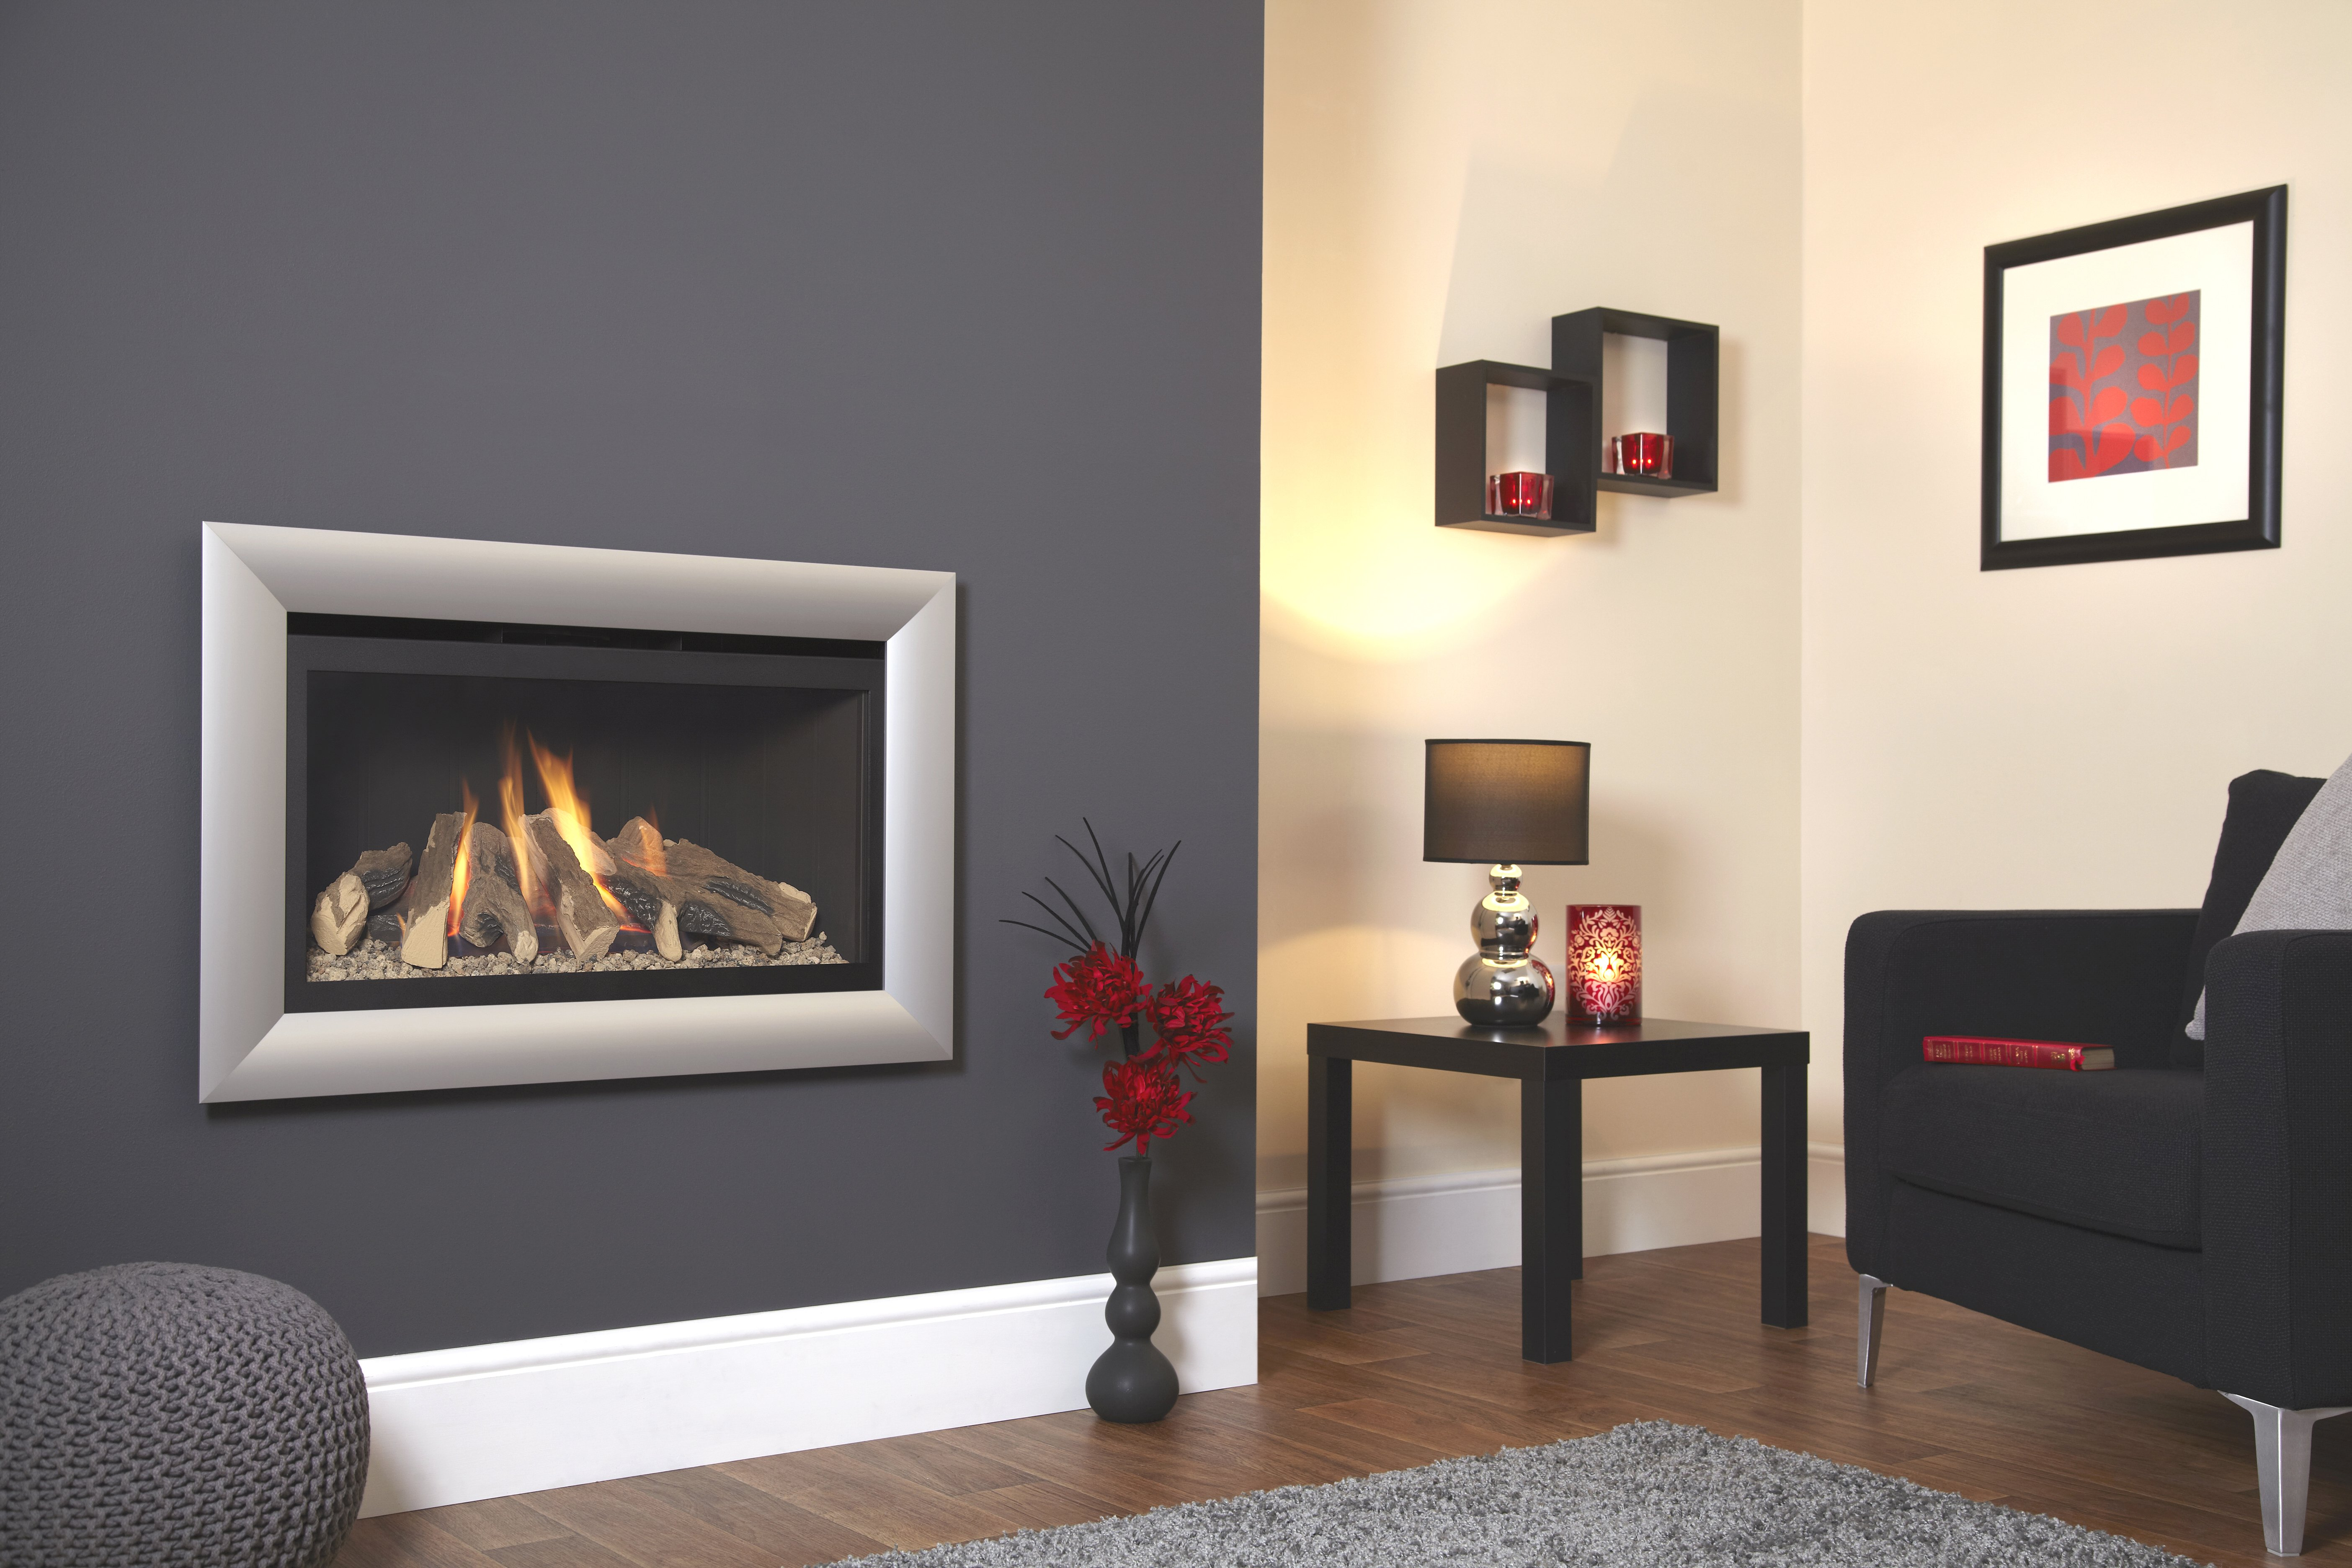 Flavel Rocco Hole in the Wall Gas Fire